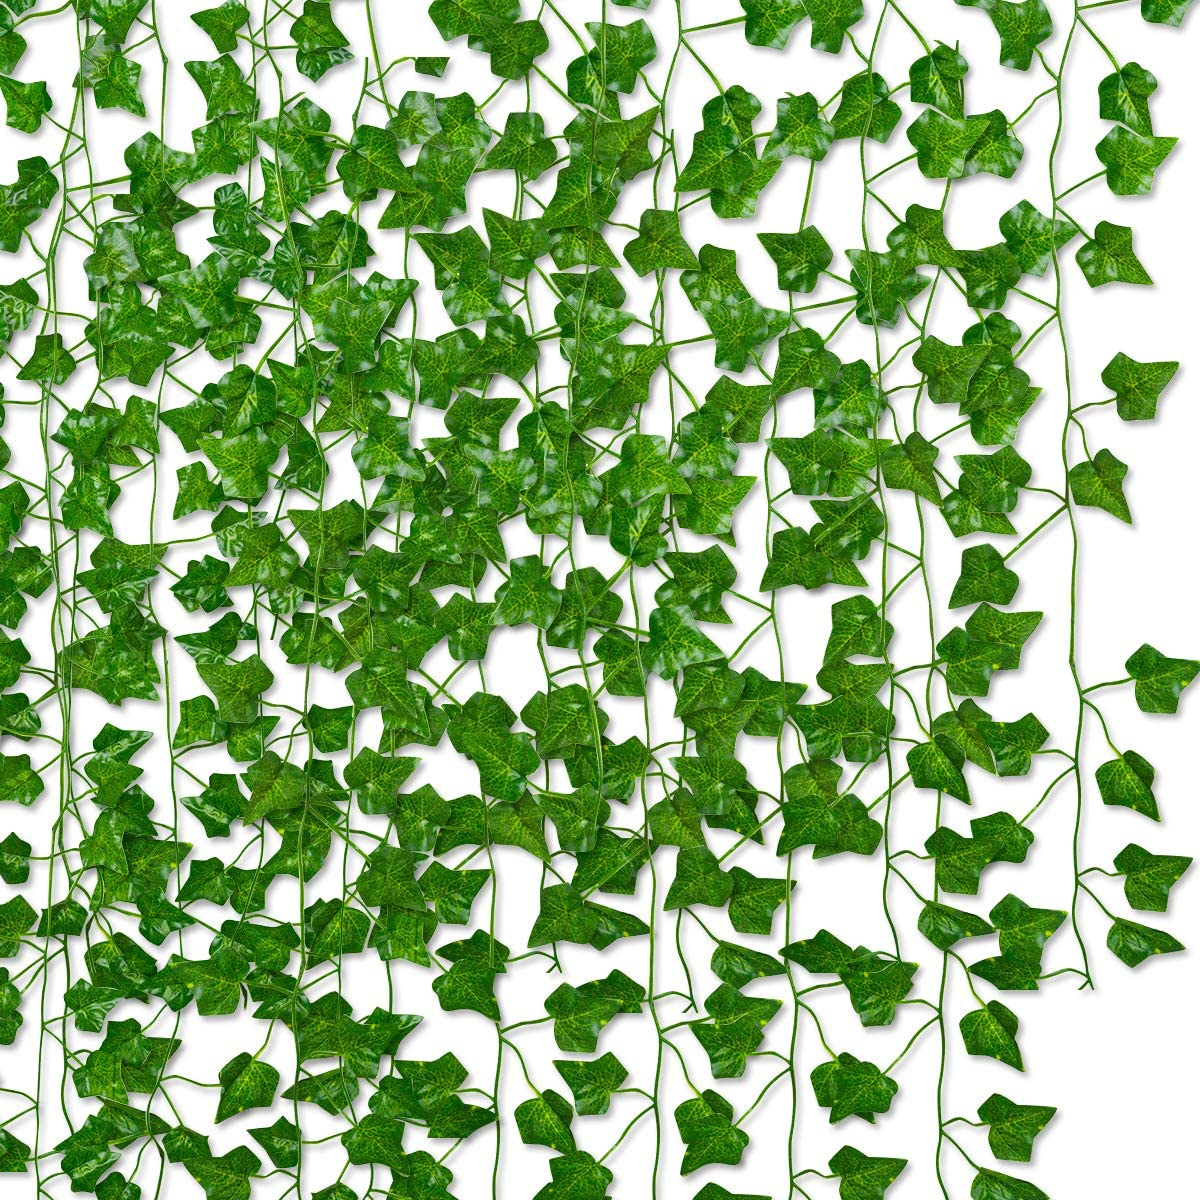 E Shop LLC 84 Ft 12 Strands Artificial Ivy Garland Vine Fake Greenery Leaf Decor Faux Green Hanging Plant Vine for Wall Party Wedding Room Home Garden Kitchen Wall Office Indoor & Outdoor Dec